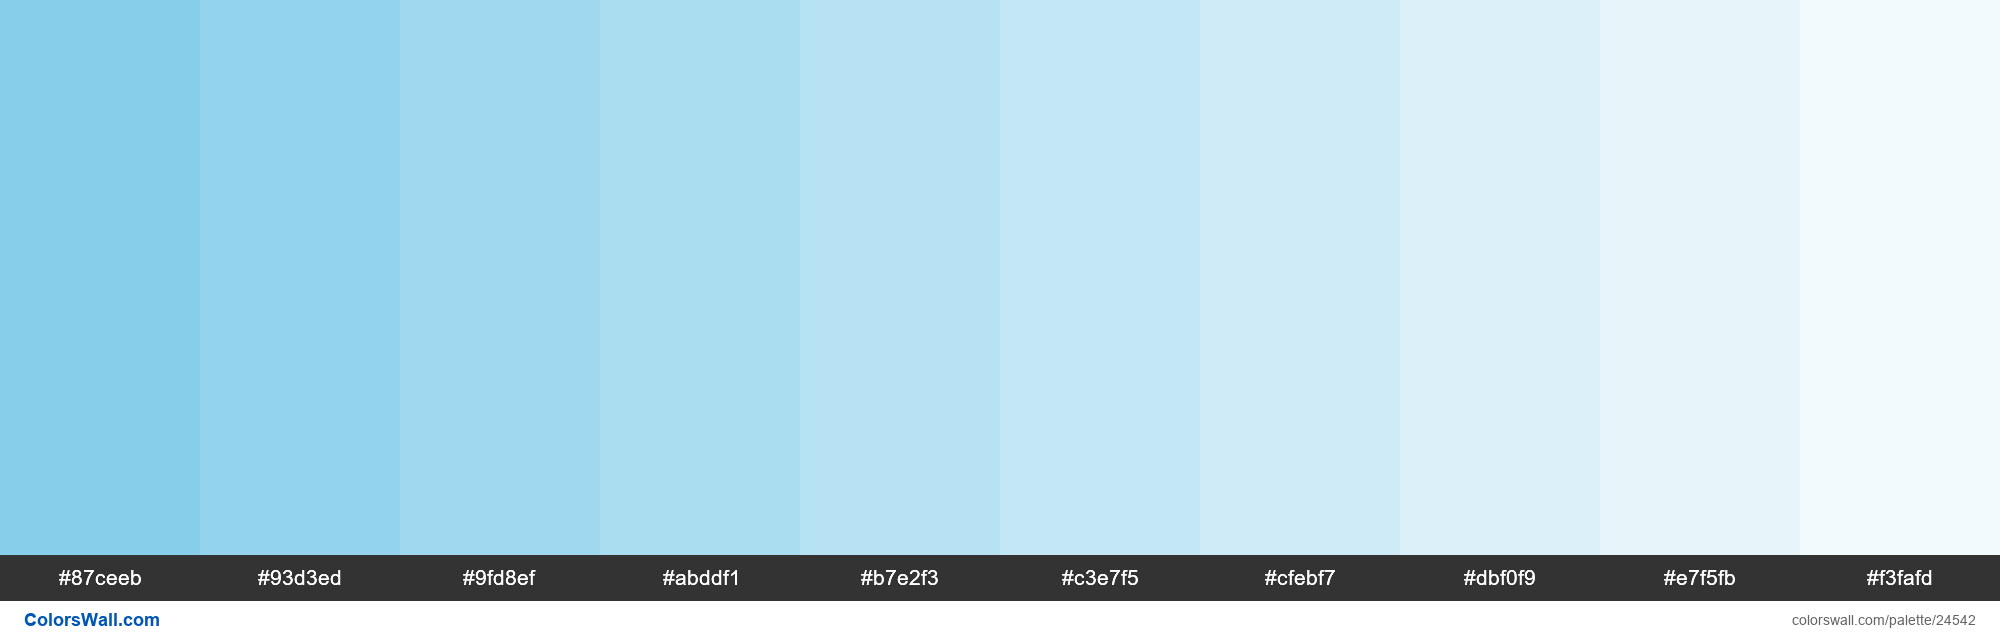 Tints of Sky Blue #87CEEB hex color - #24542